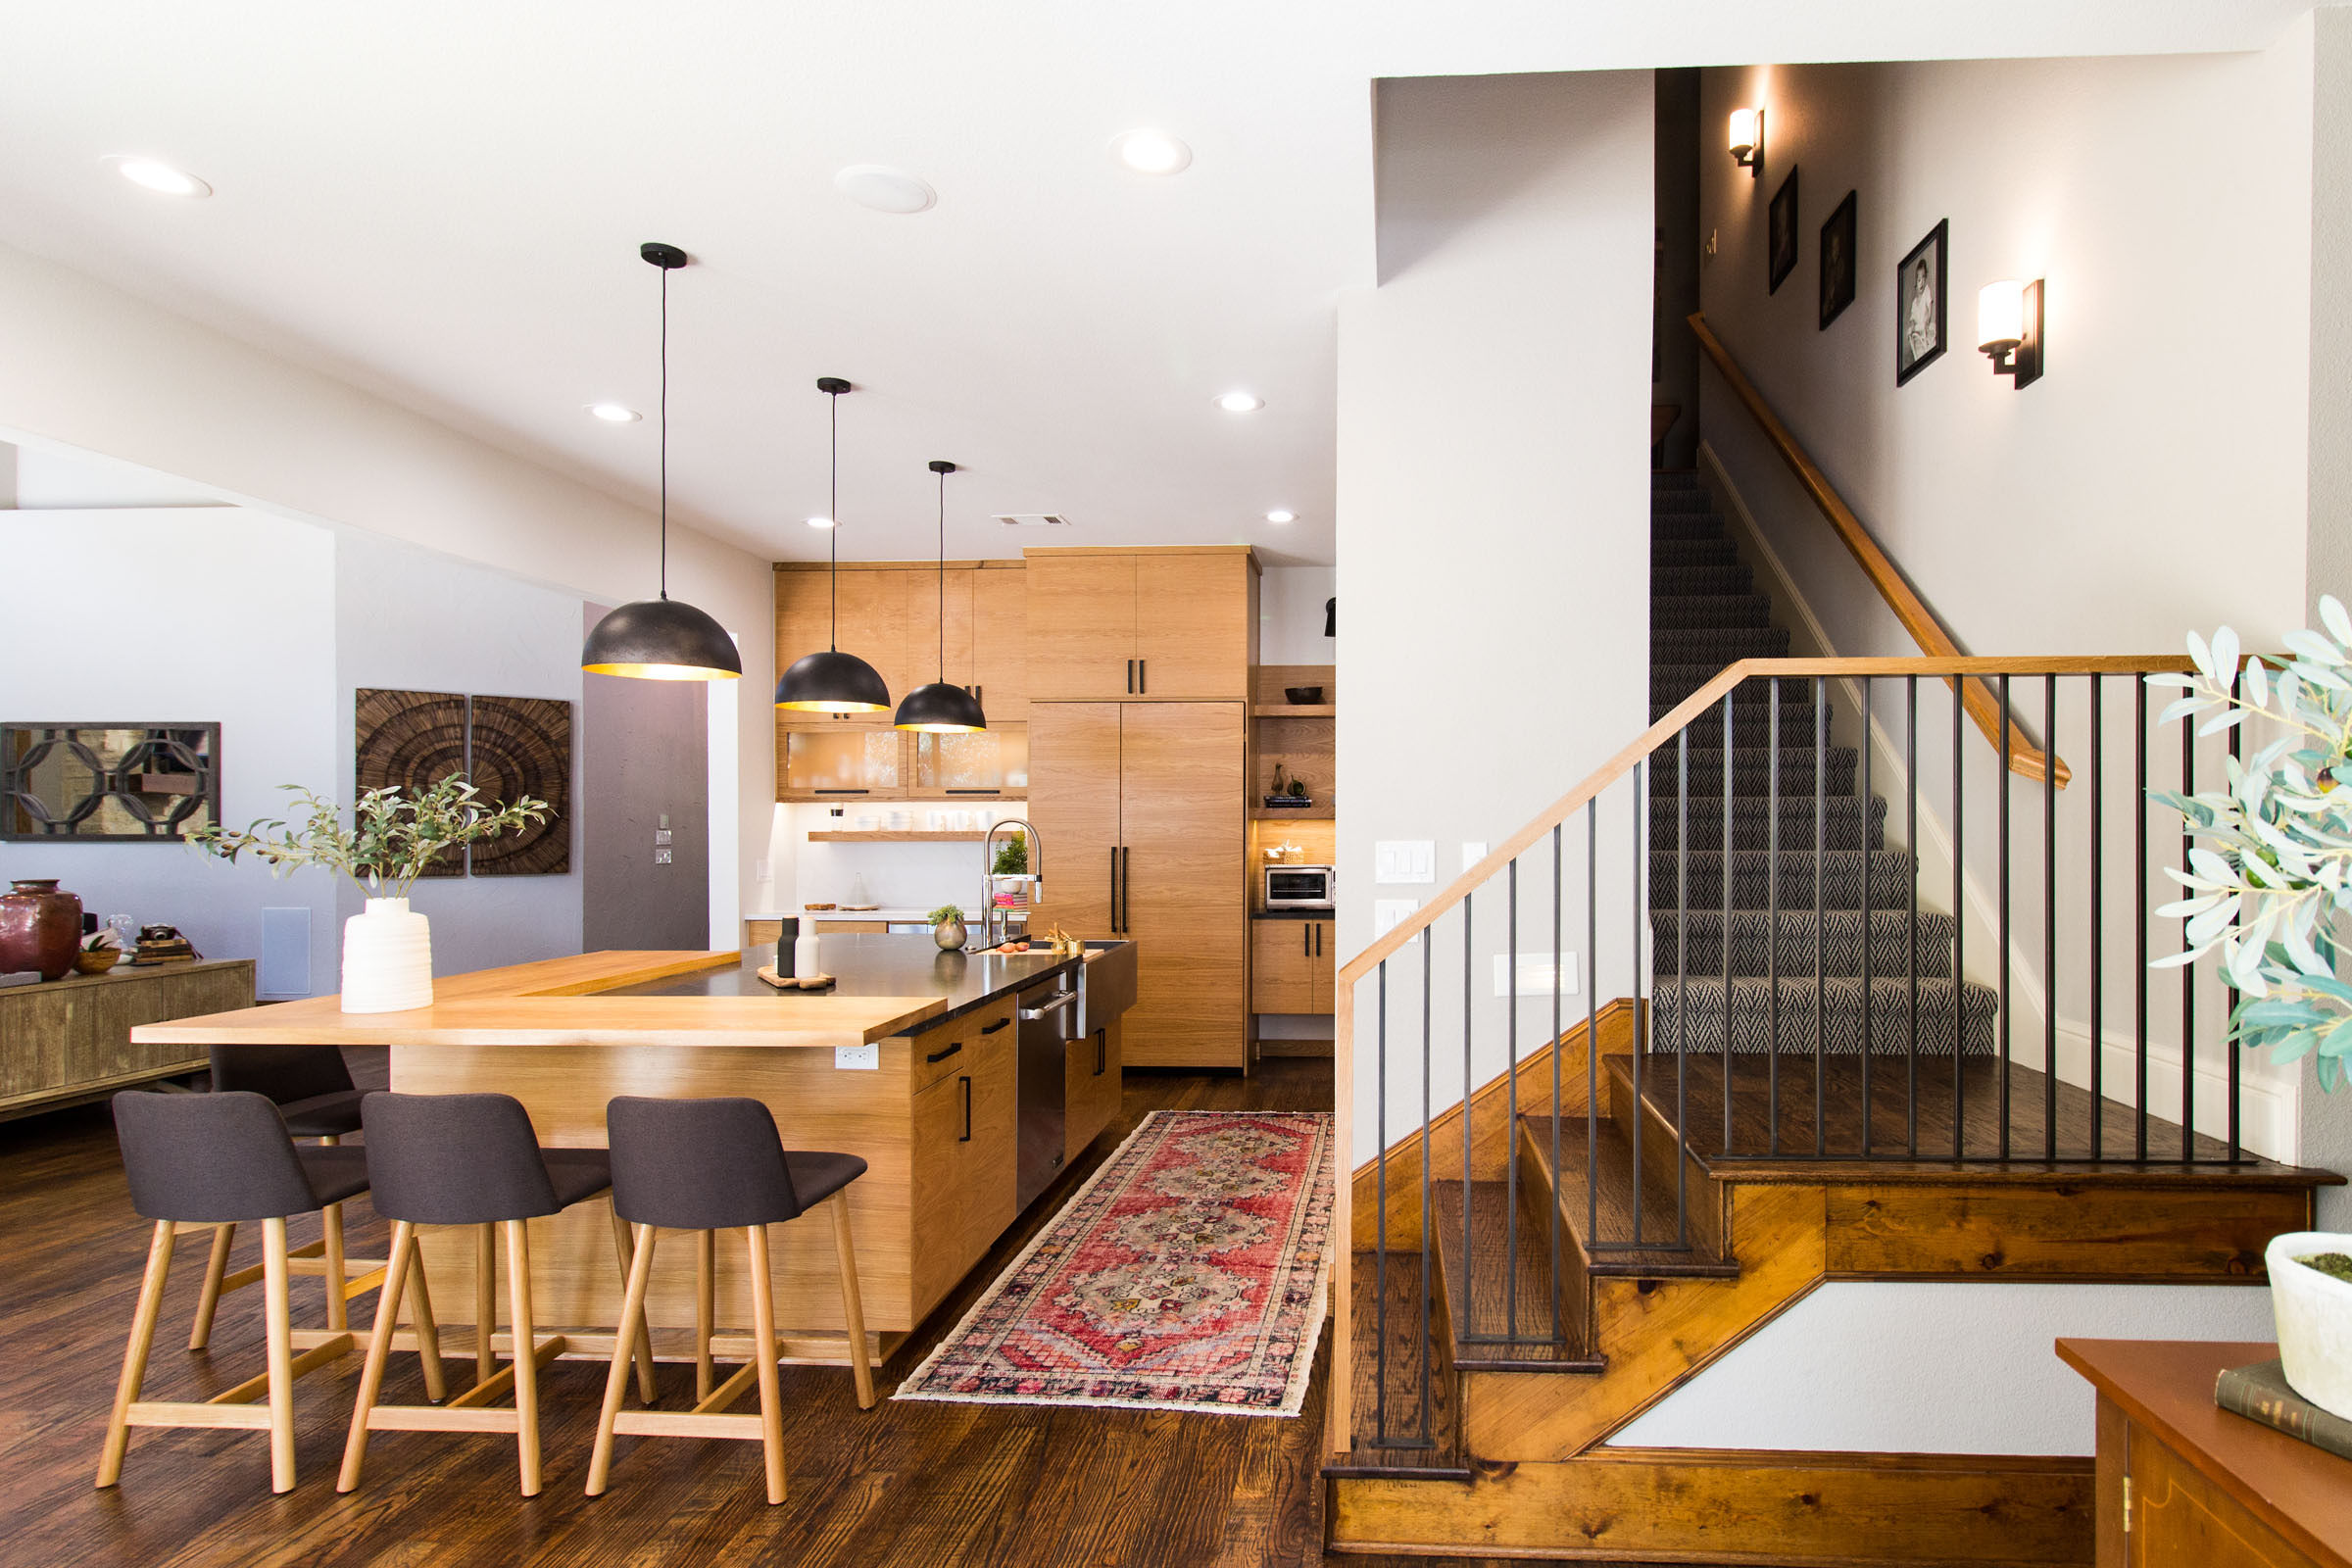 Kitchen remodel with staircase, island, living area, and breakfast nook